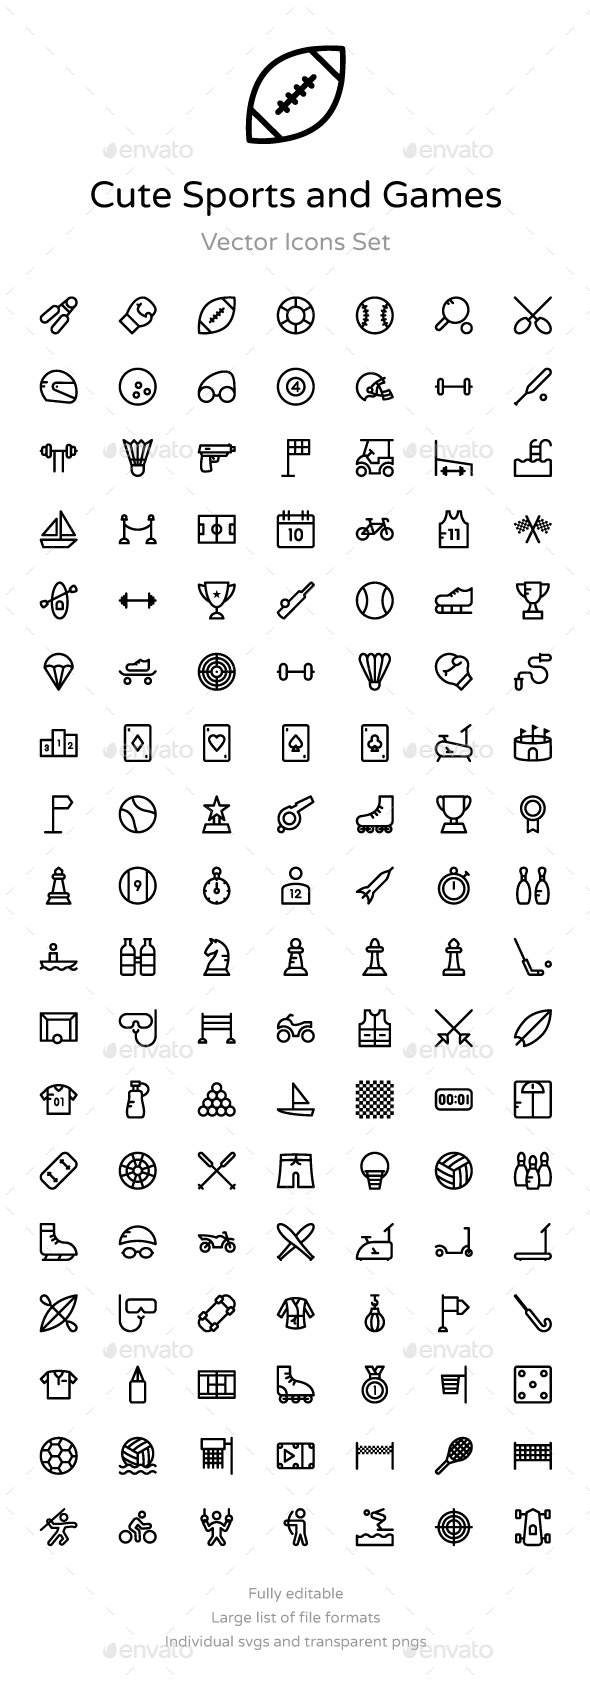 125+ Cute Sports and Games Icons - Icons